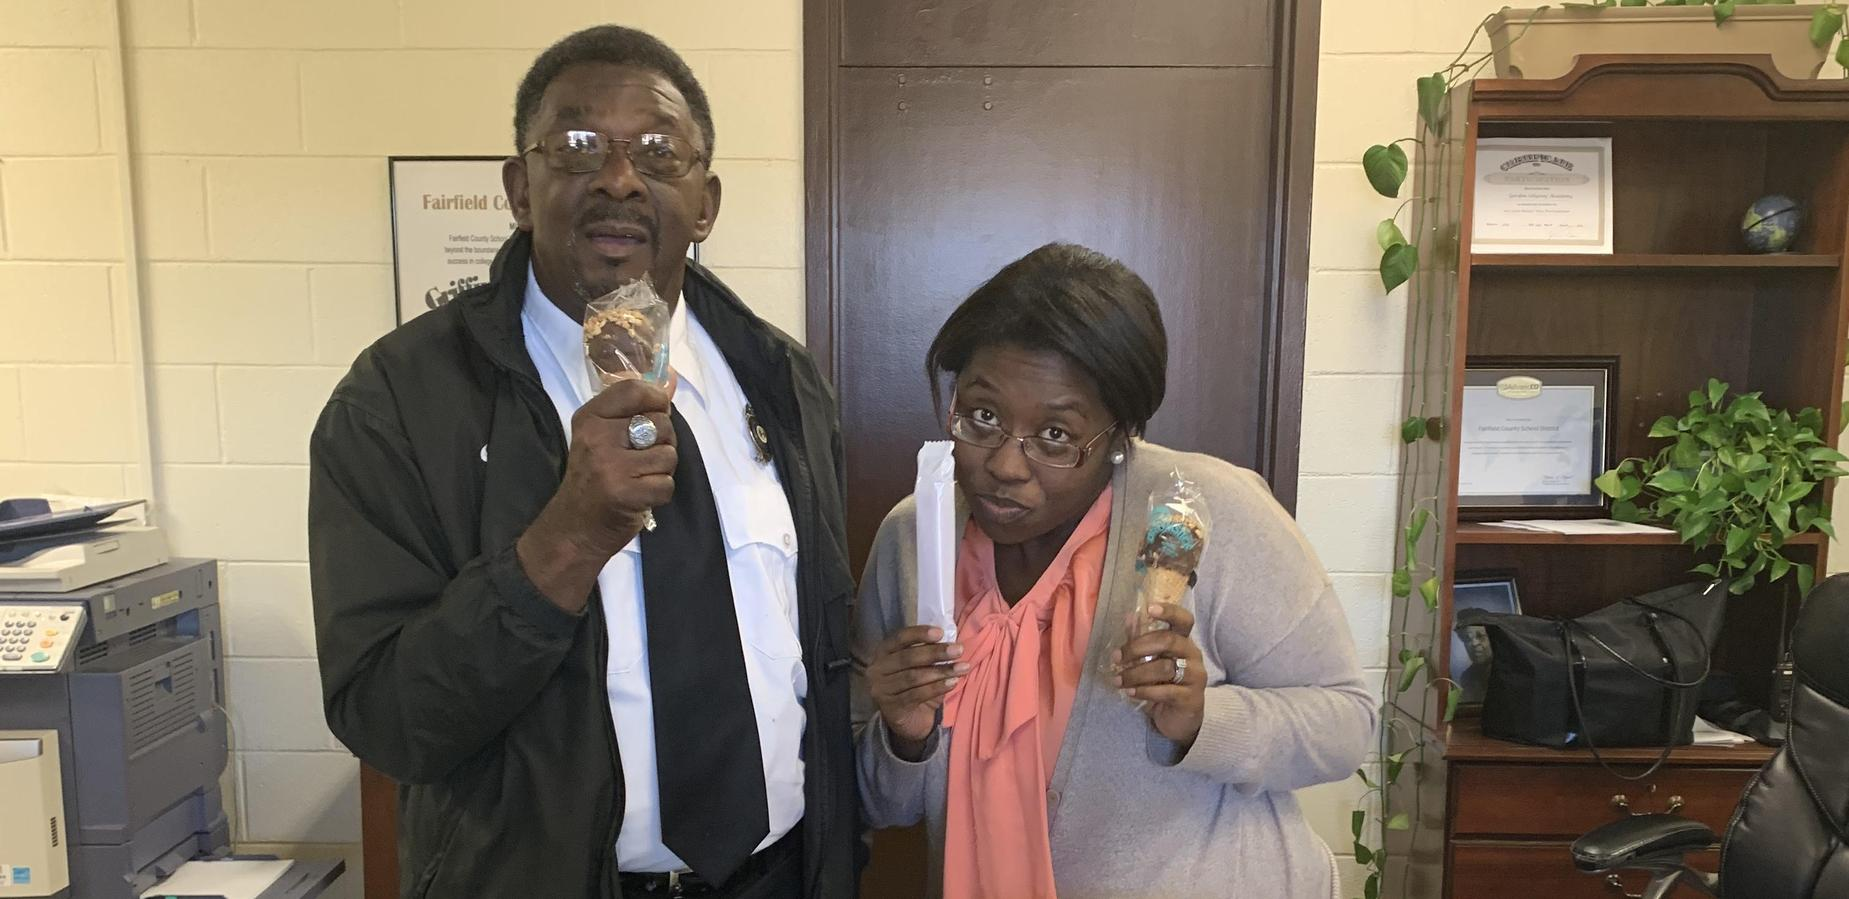 Mr. White and Mrs. Evans singing to the tune of sweet treats